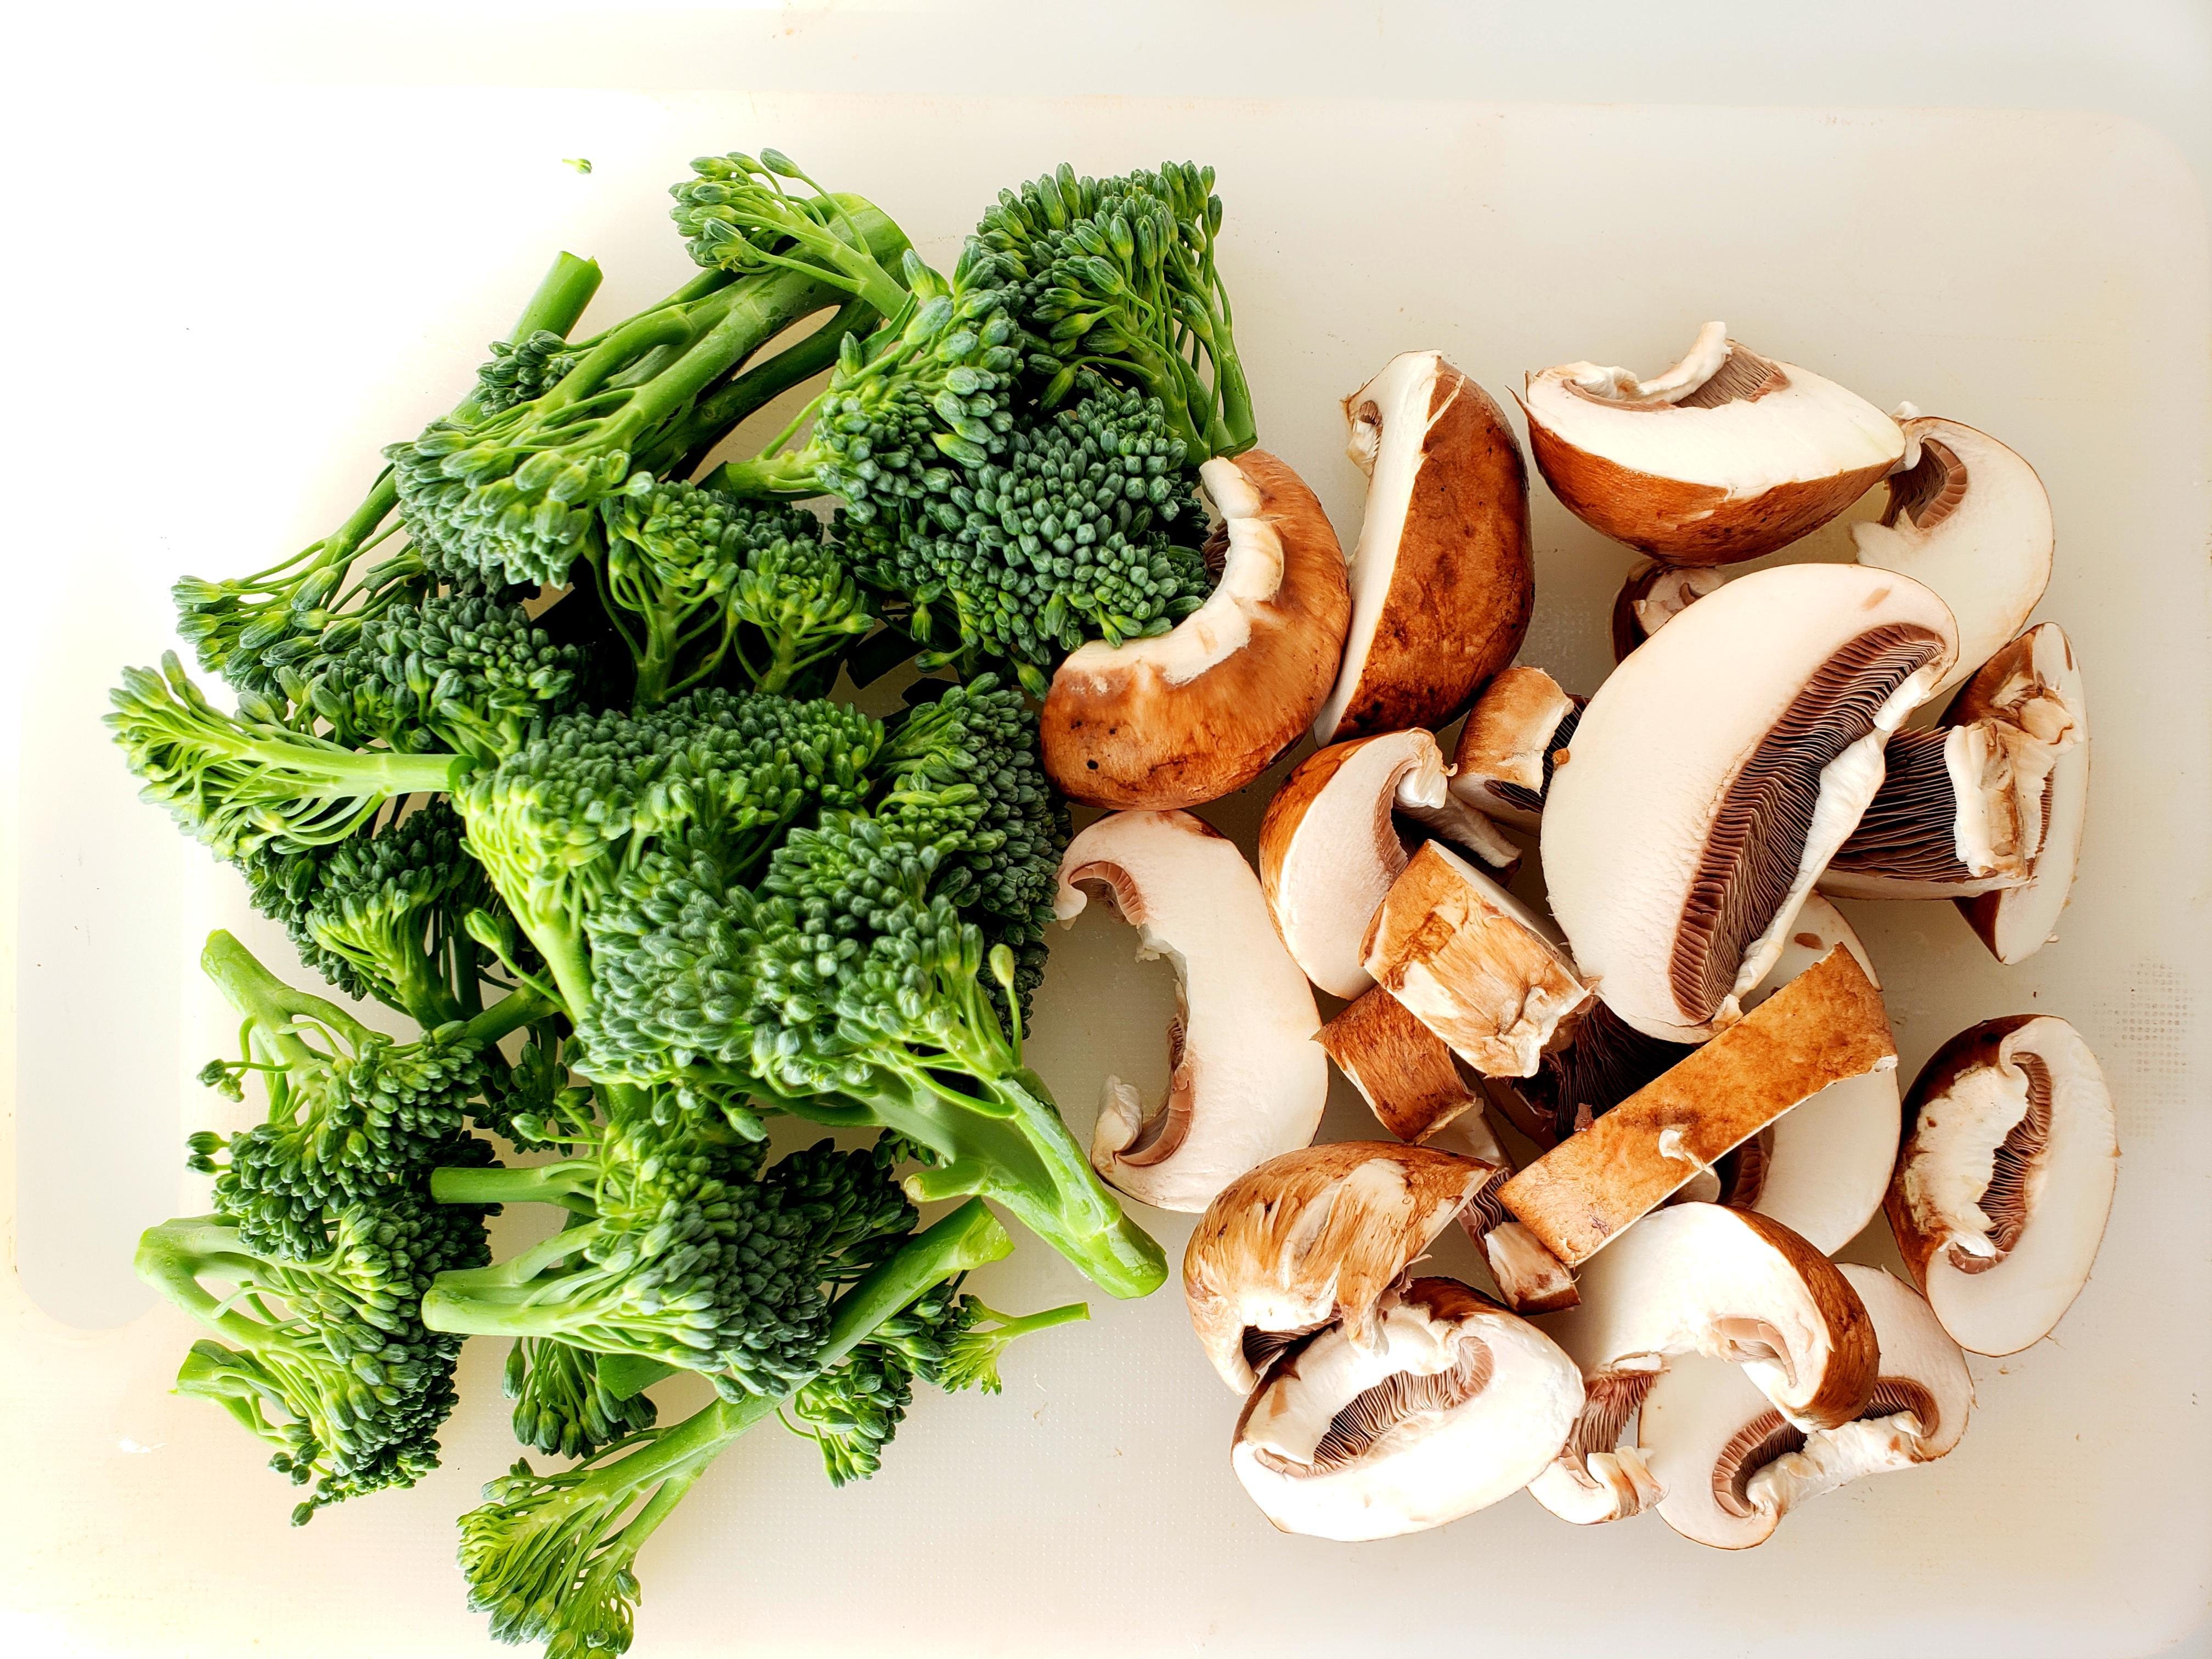 Sliced mushrooms and chopped broccolini